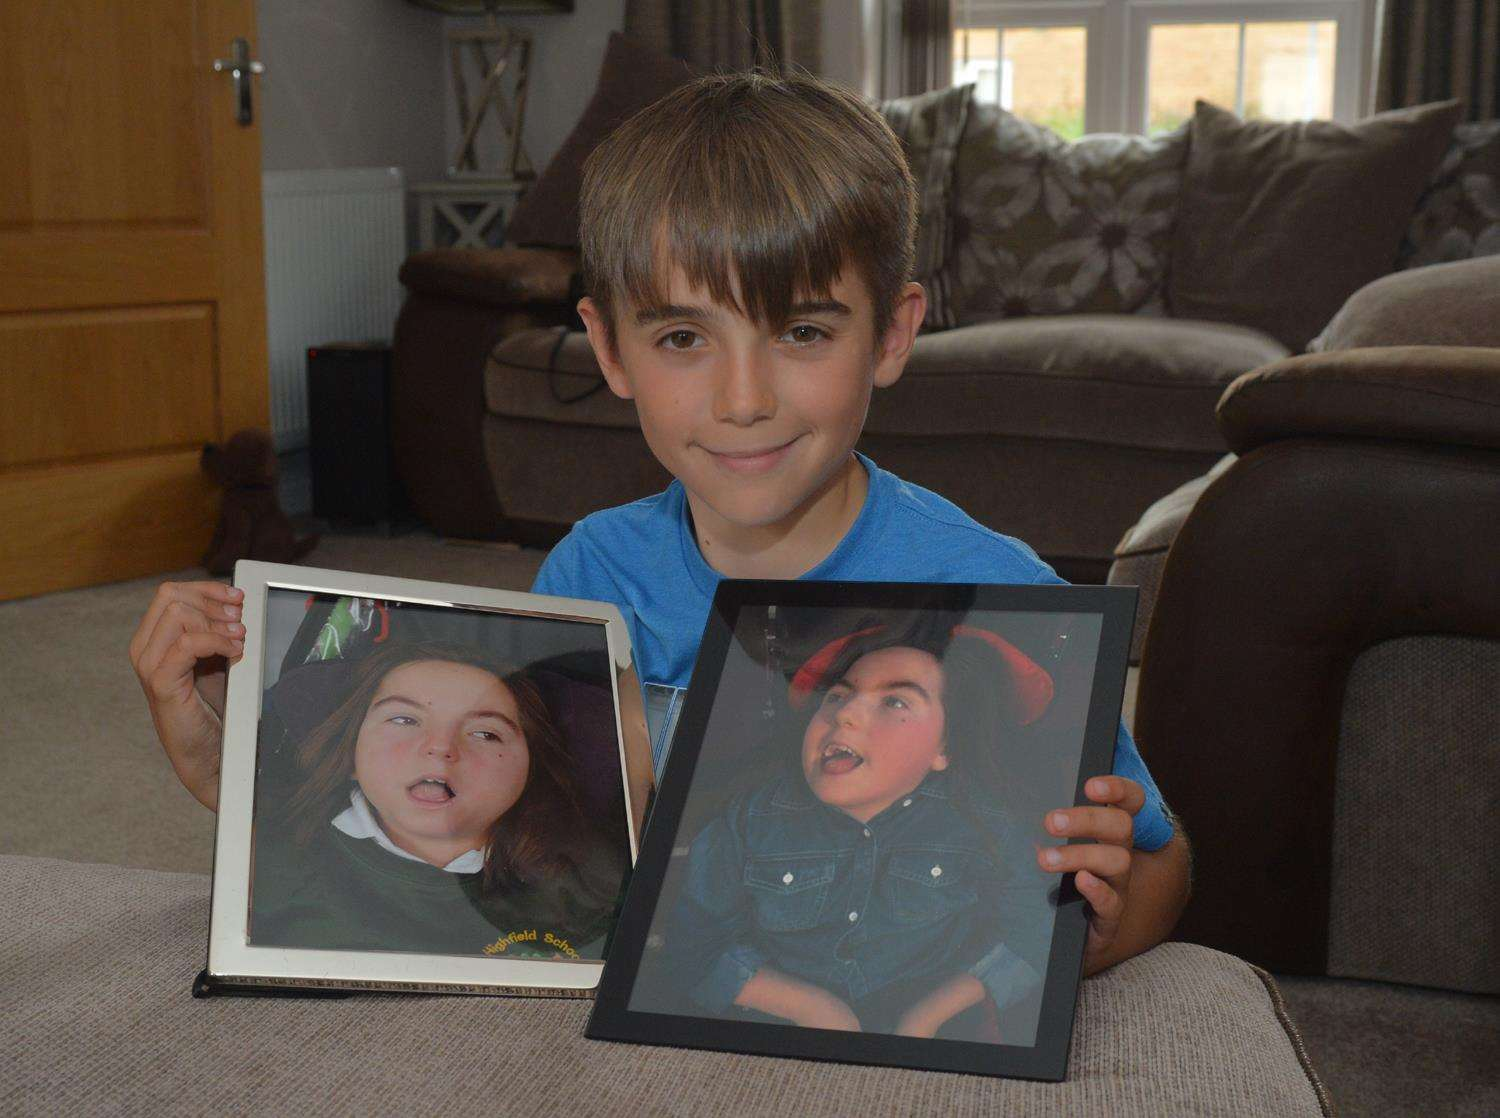 Liam Johnson, who is raising money for East Anglia's Children's Hospices in memory of his twin sister Lucy